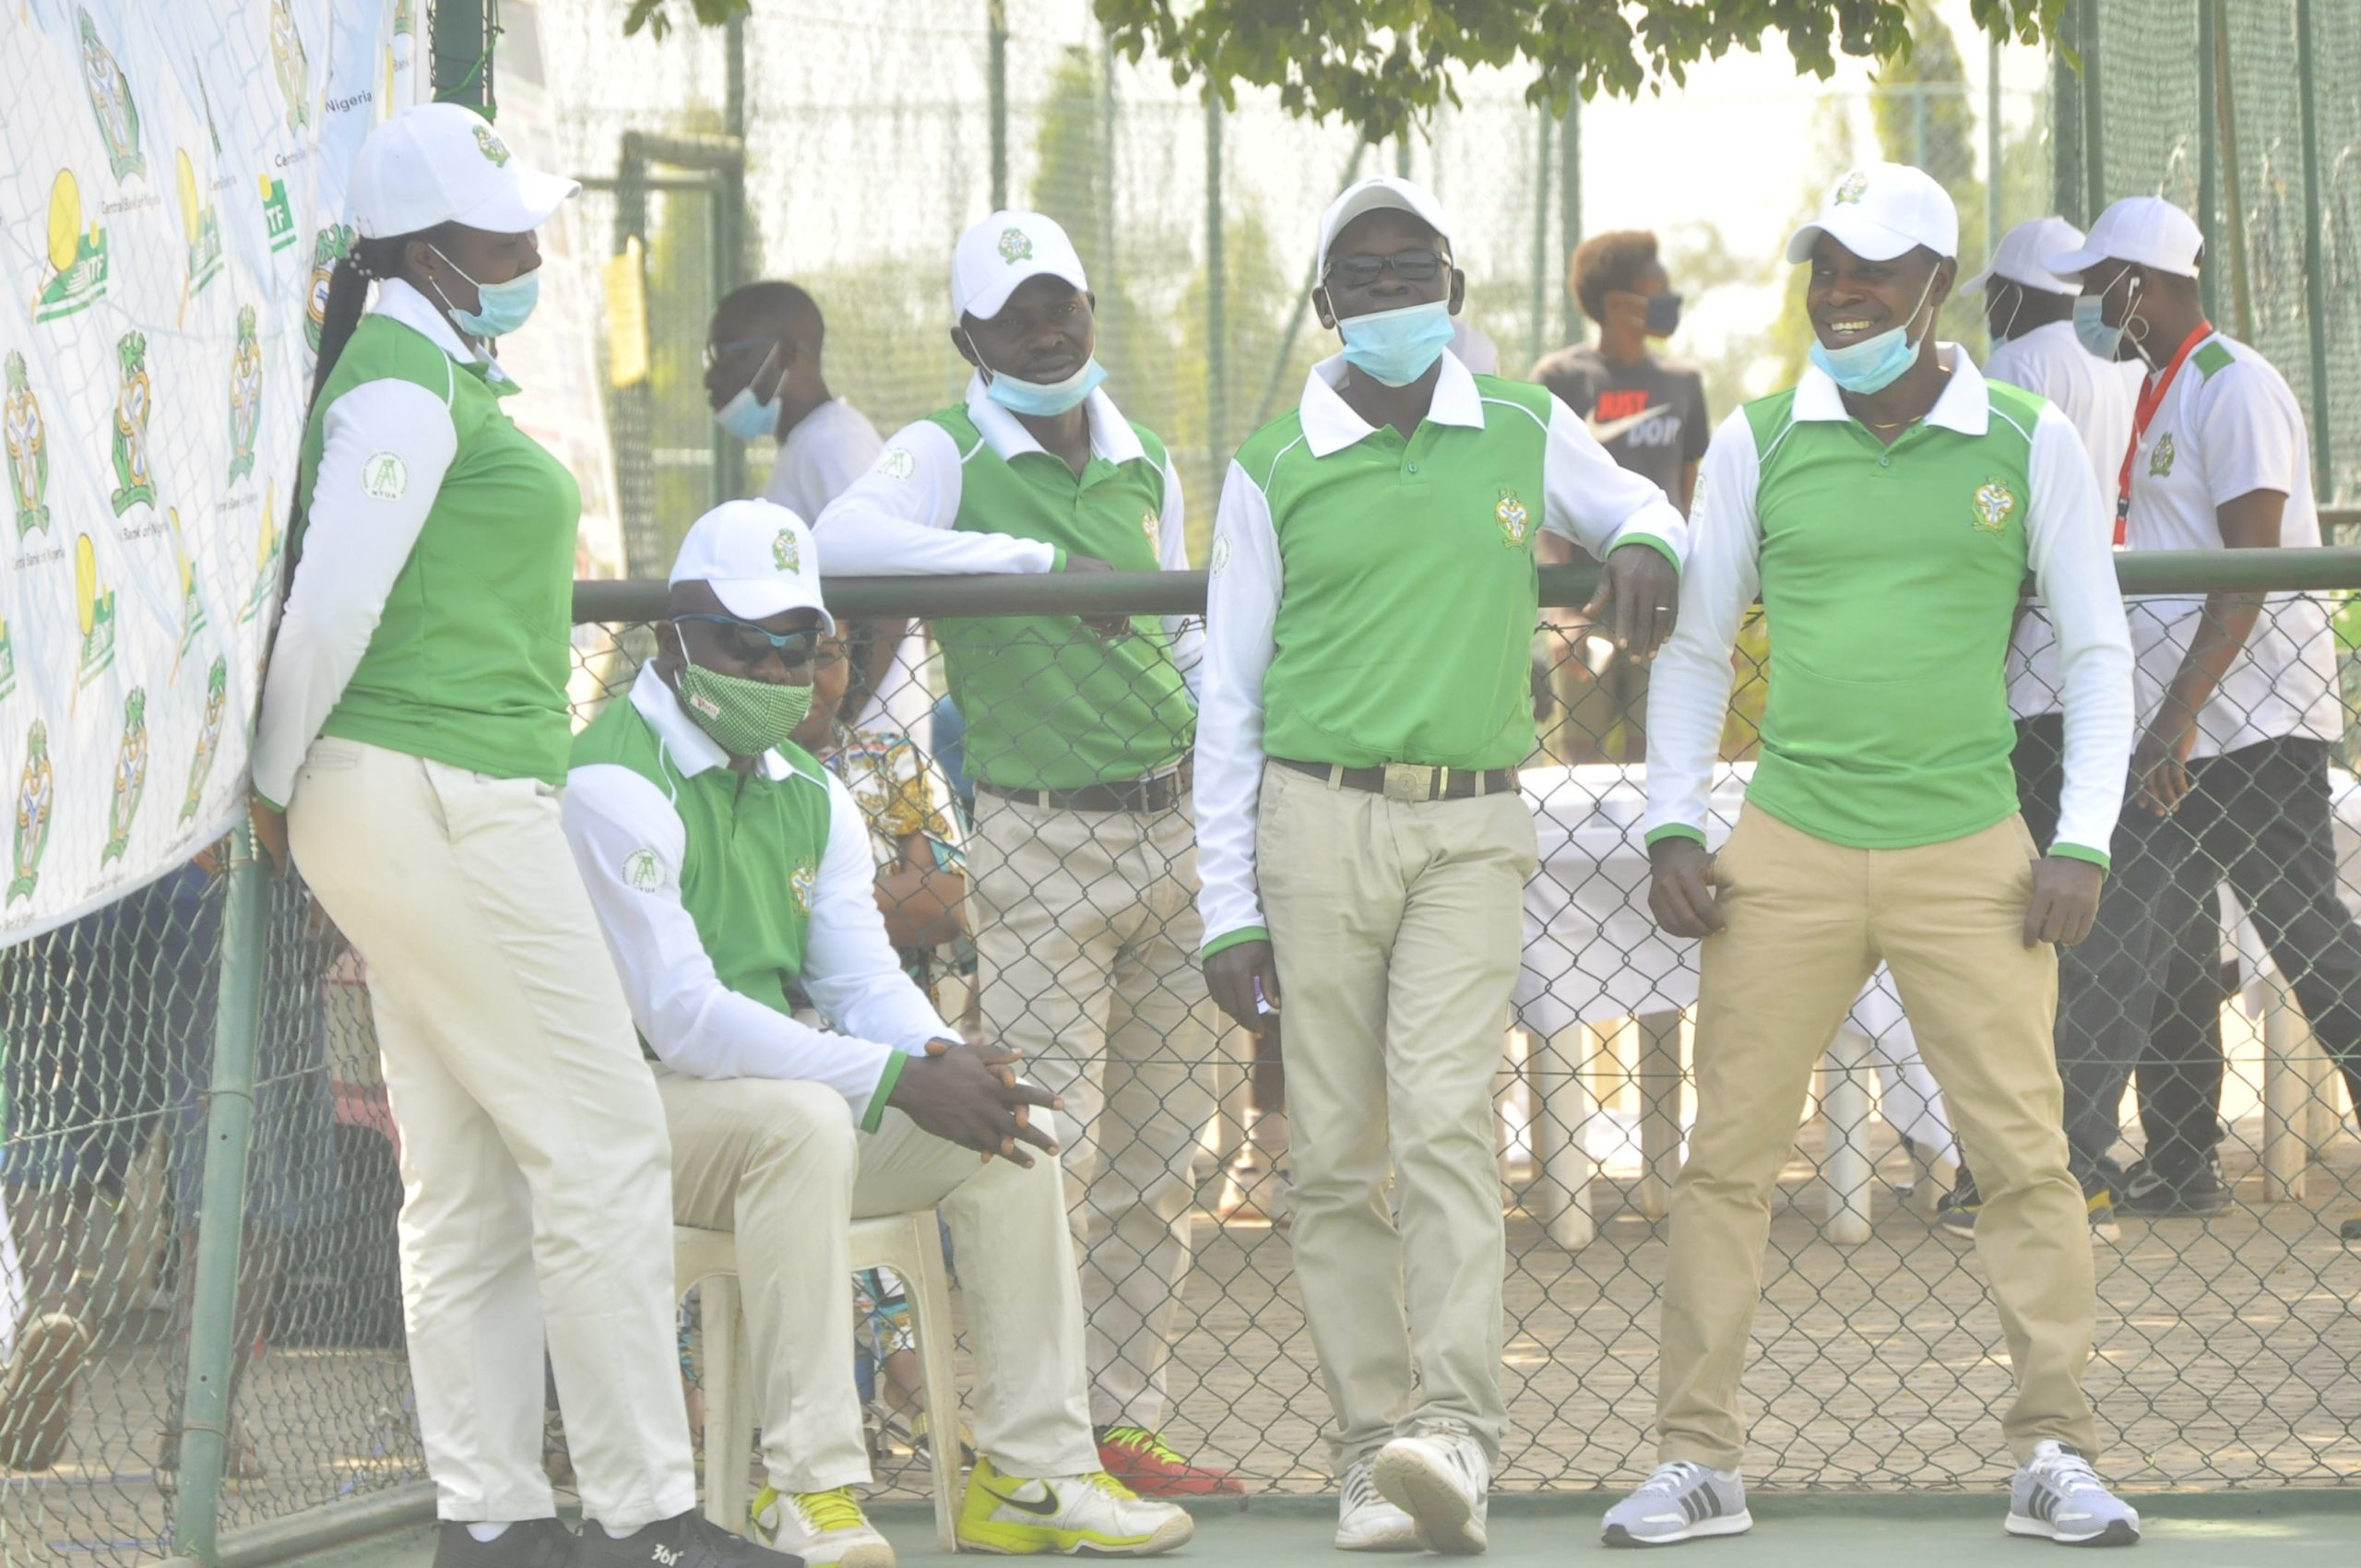 CBN 2020 FINAL UMPIRES scaled